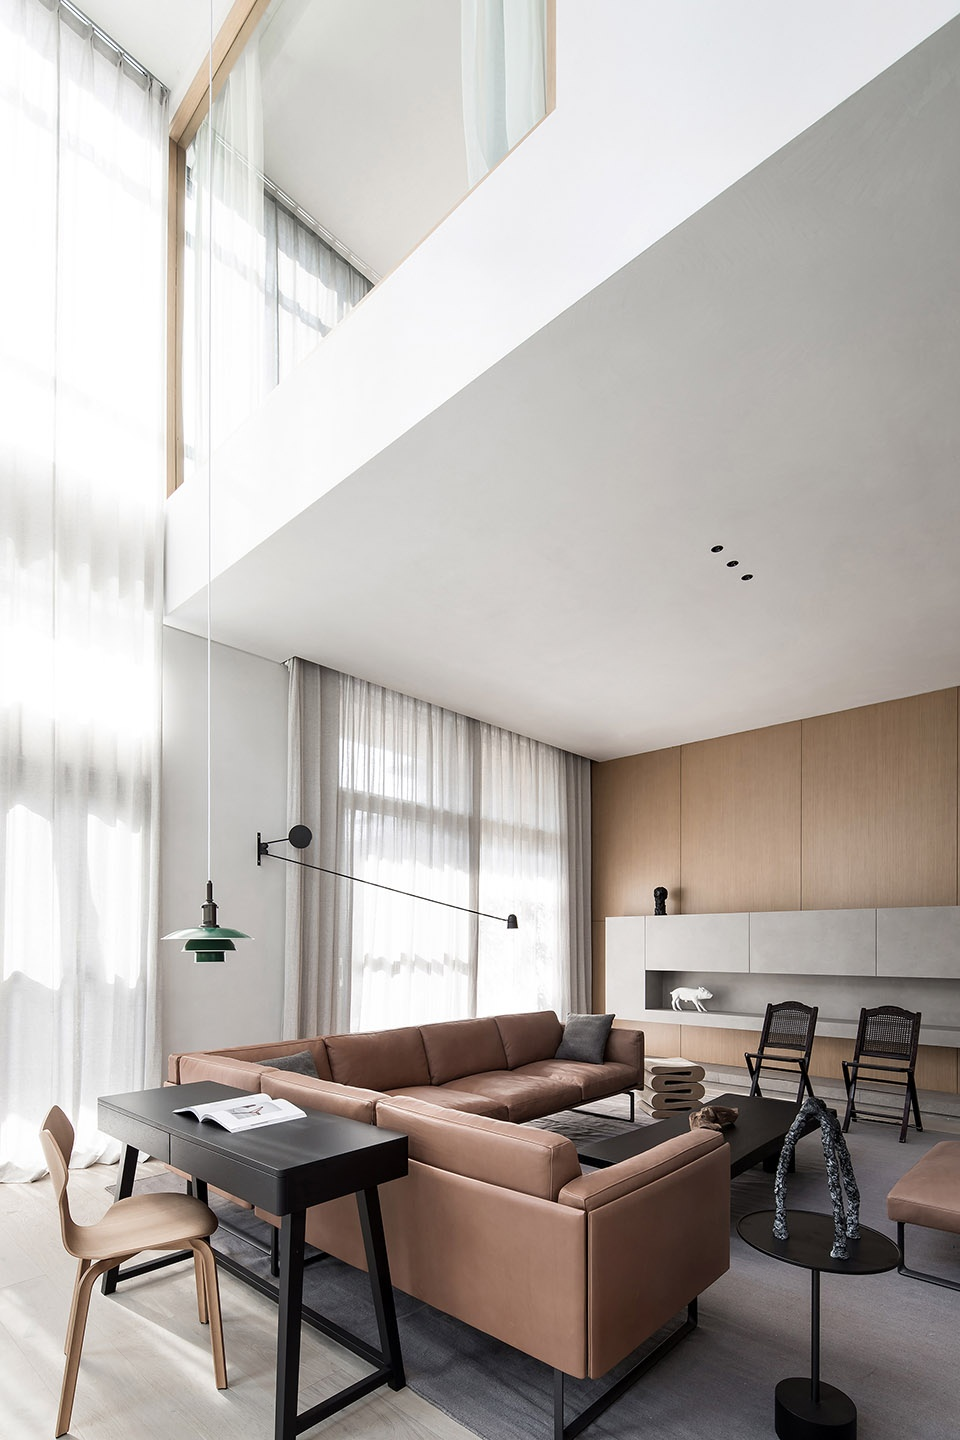 030-a-desired-home-china-by-liang-architecture-studio-960x1440.jpg